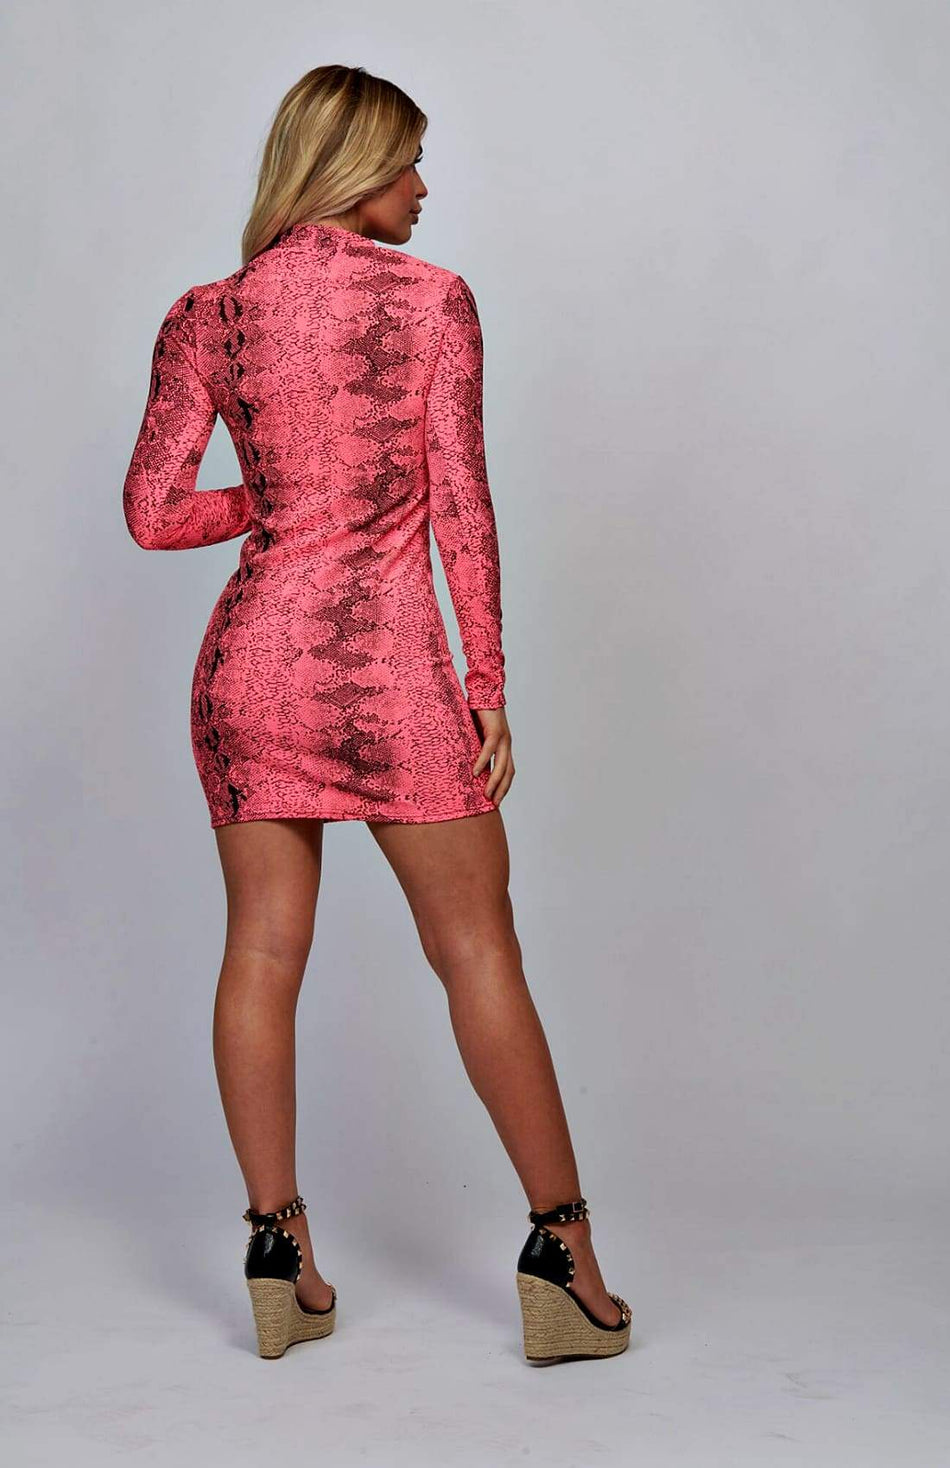 Neon Pink Snake Print High Neck Bodycon Dress